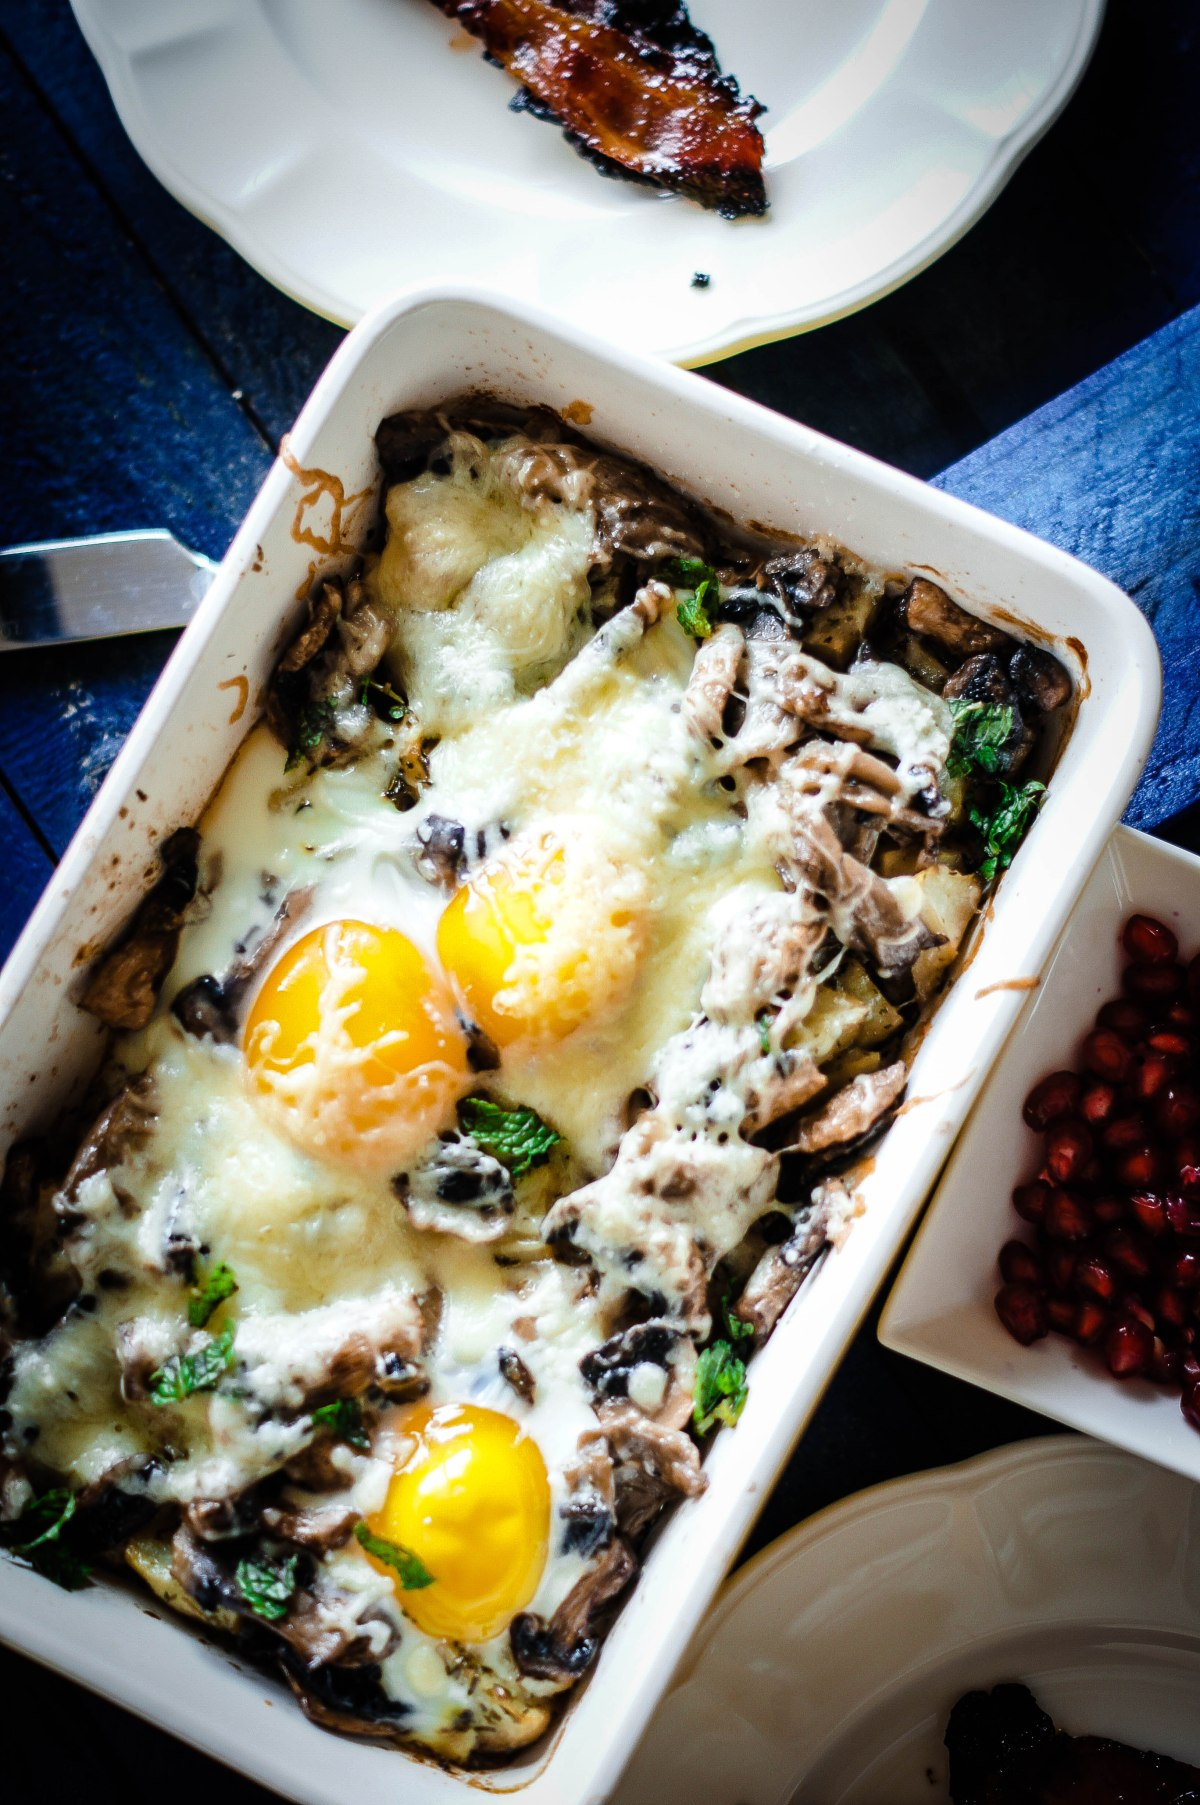 Mushroom and Egg Bake – Breakfast Bake